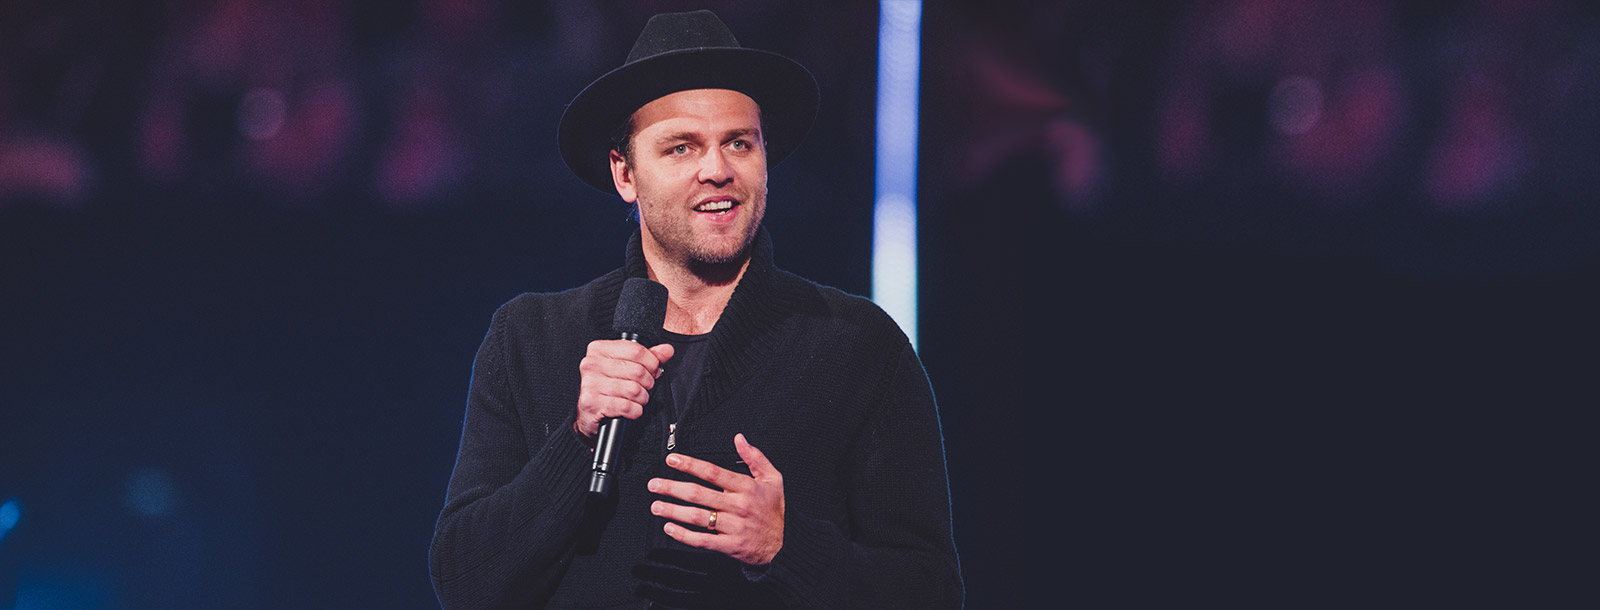 Joel Houston, Lead Pastor NYC